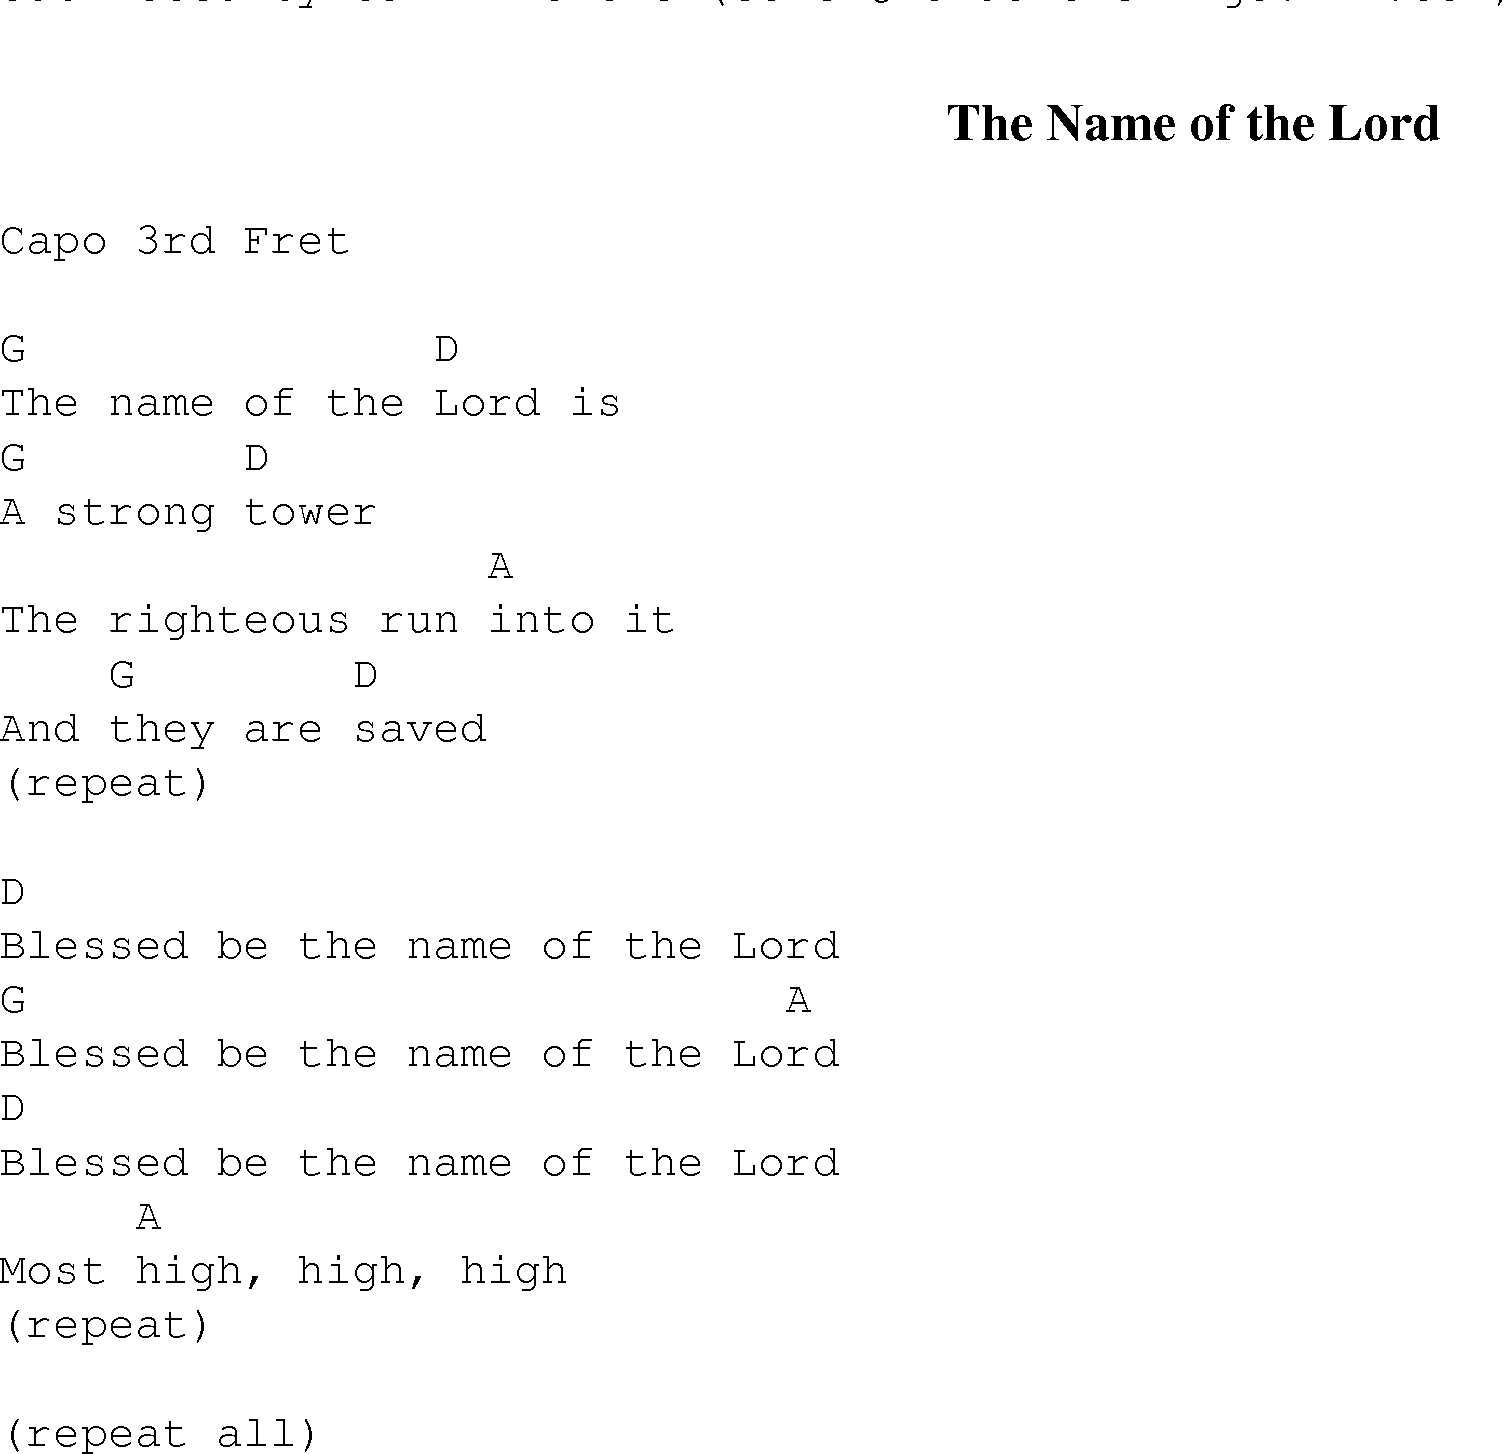 The Name of the Lord   Christian Gospel Song Lyrics and Chords